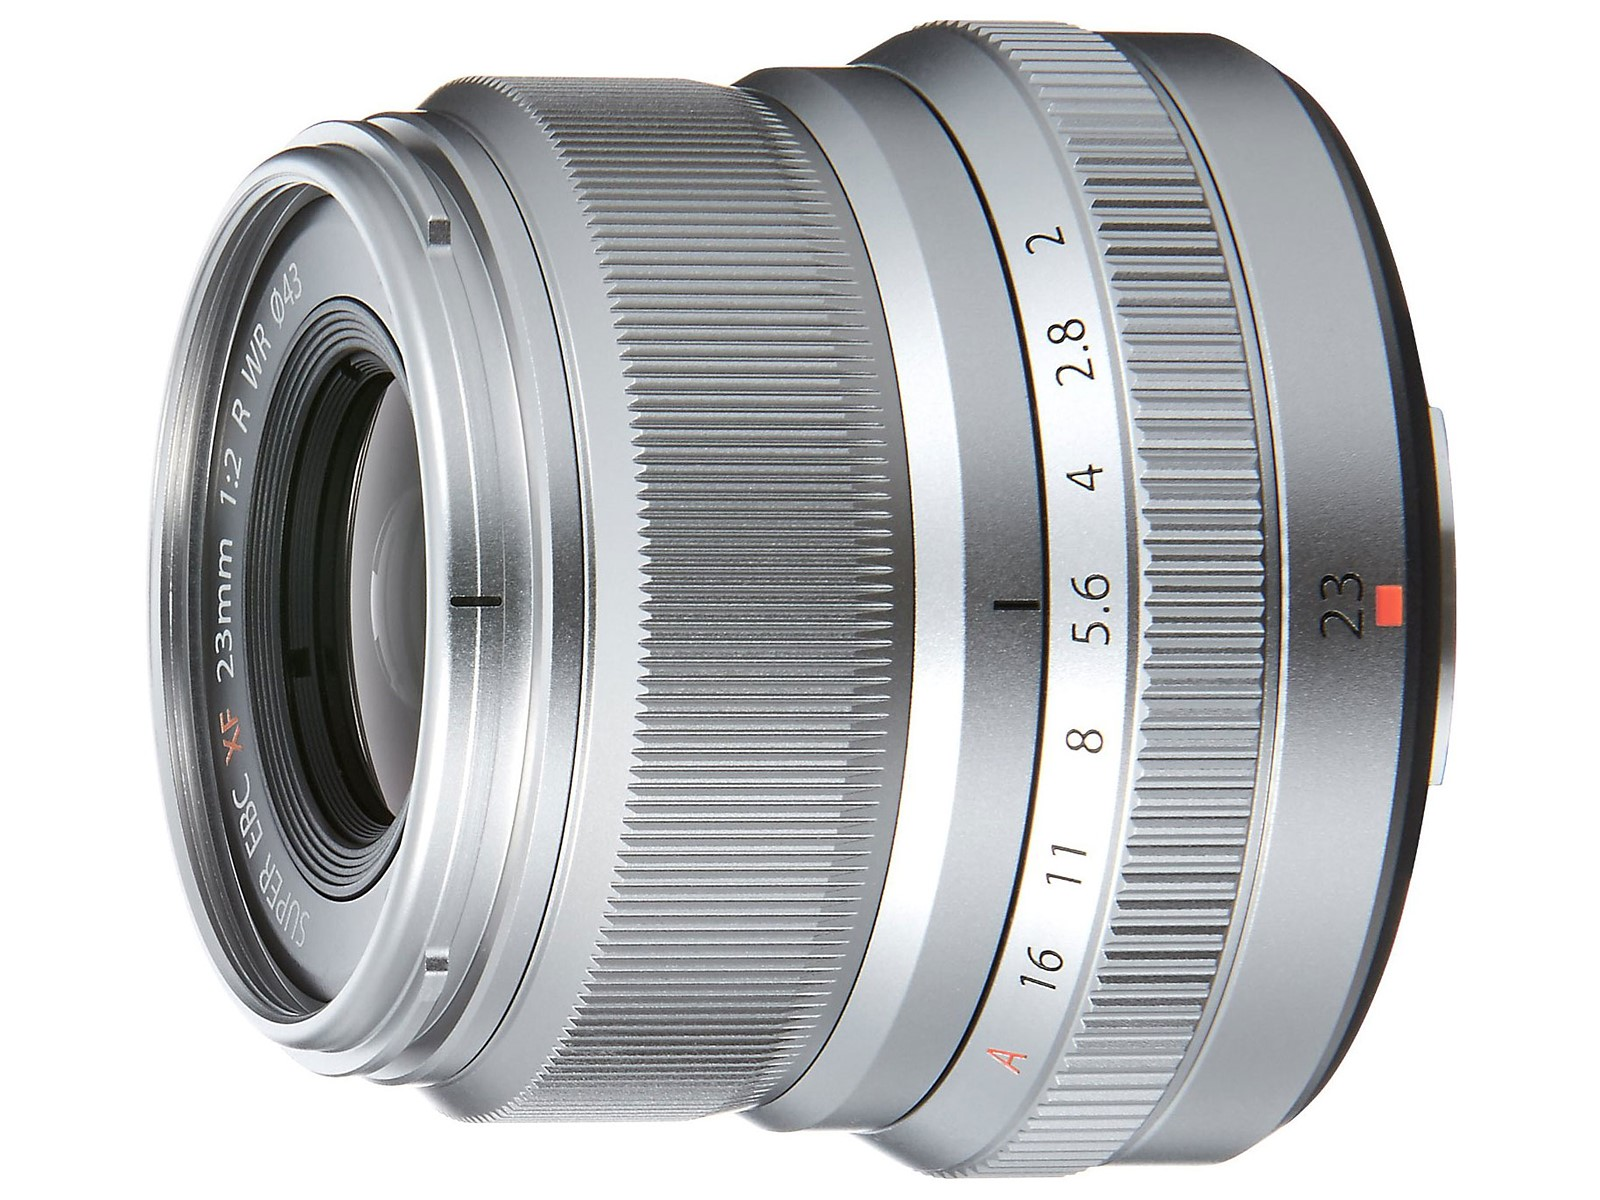 Silver Fujinon XF23mm F2 R Weather Resistant Lens